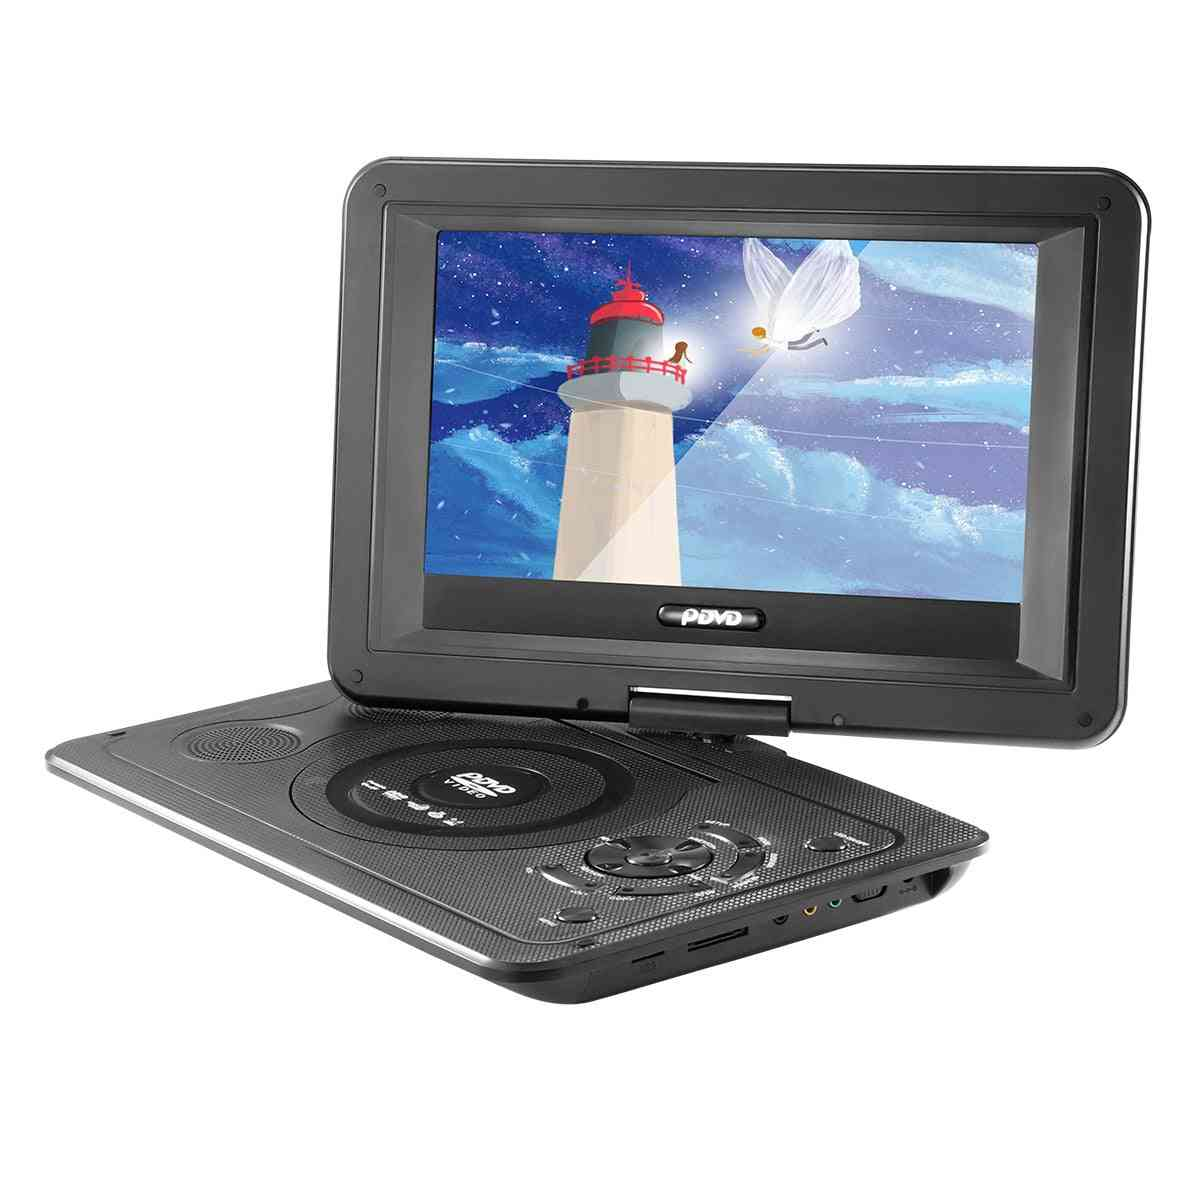 13.9 Inches Dvd Player - 16:9 Lcd Screen For Eu Plug